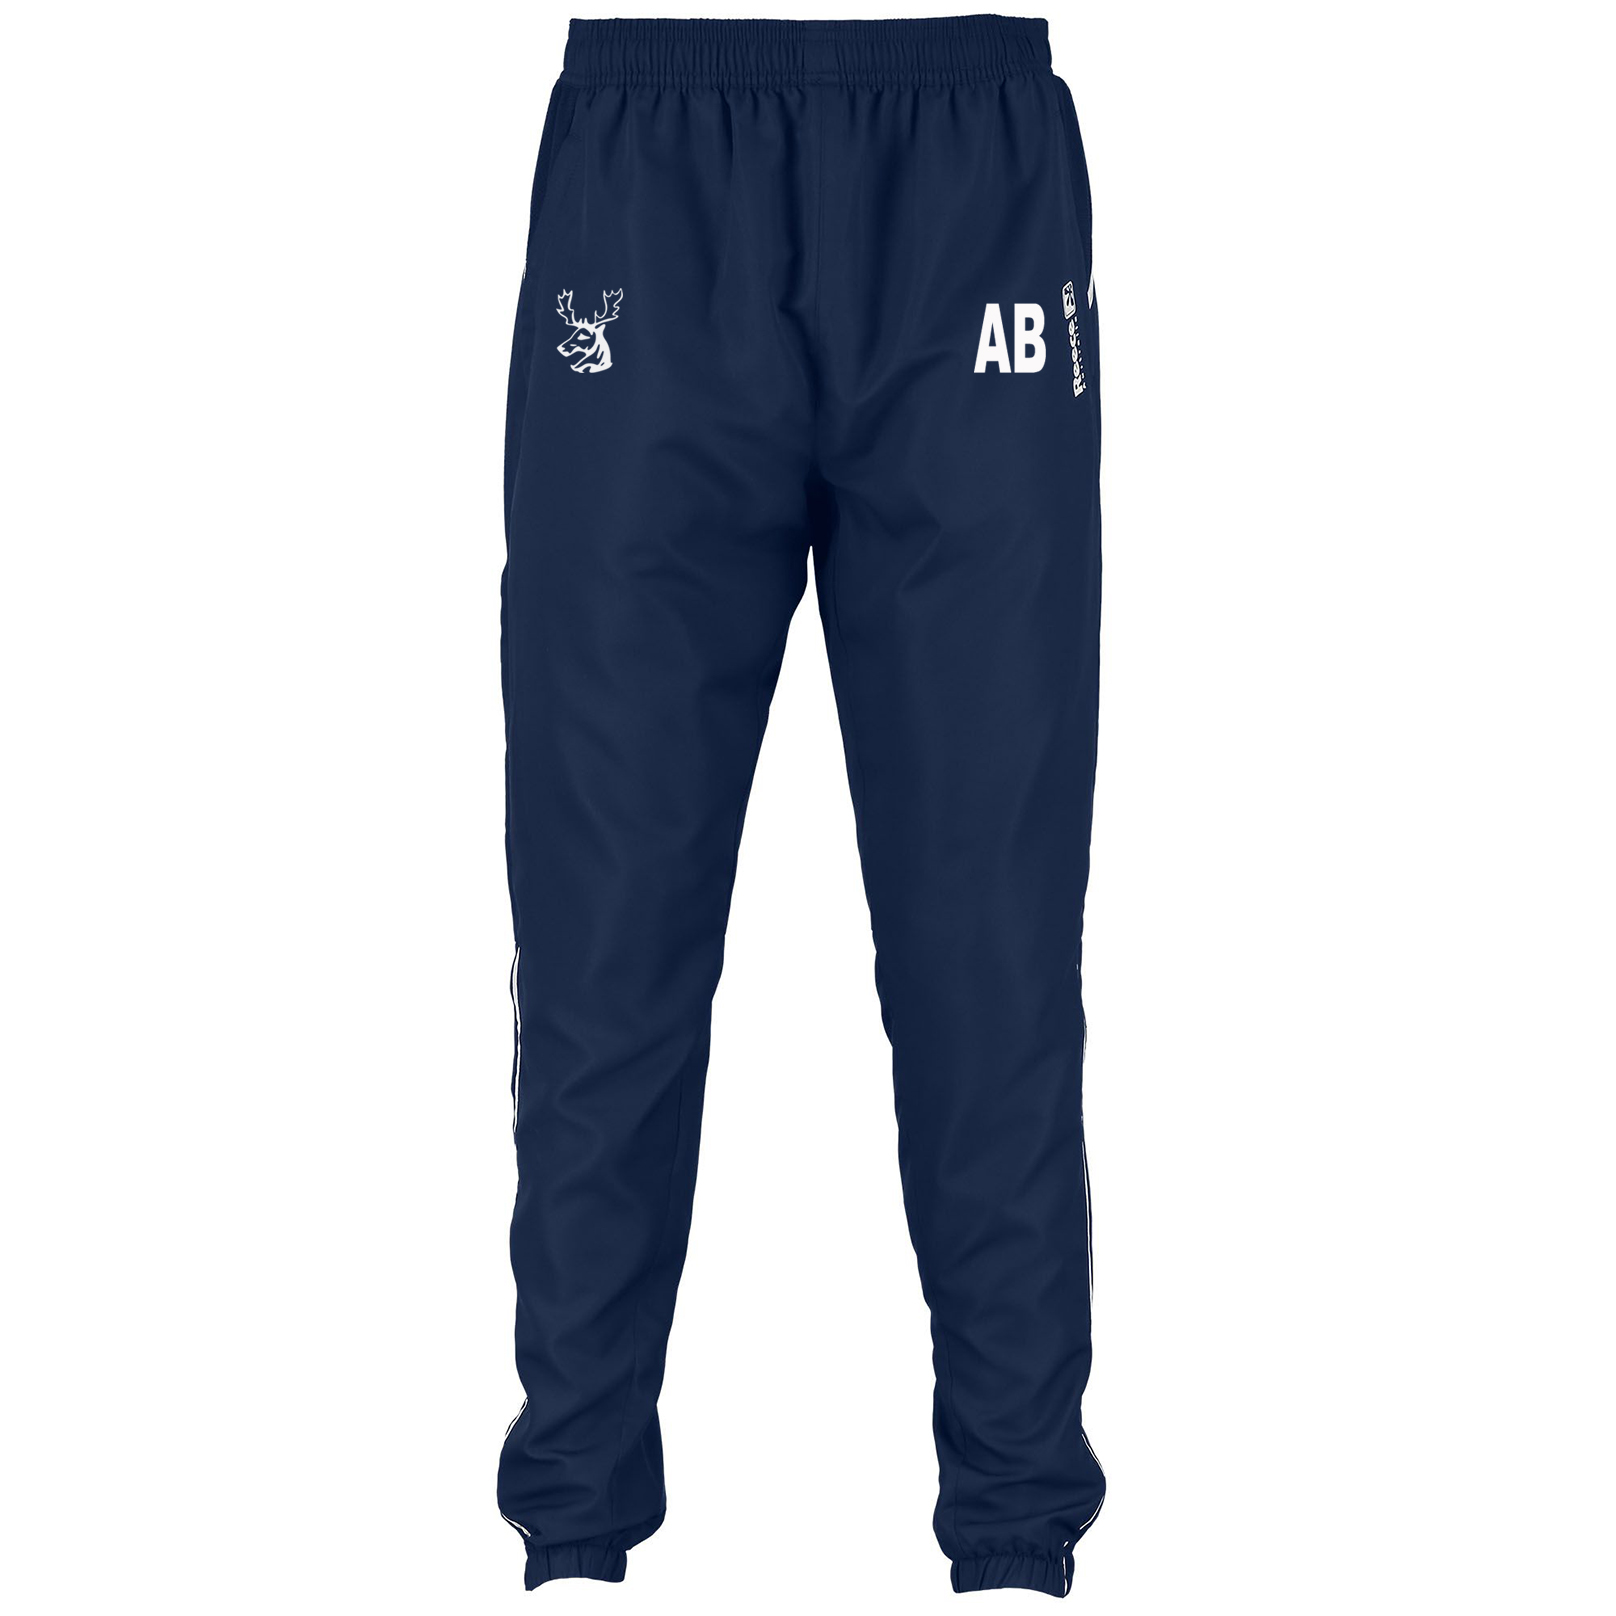 pants-navy-initials